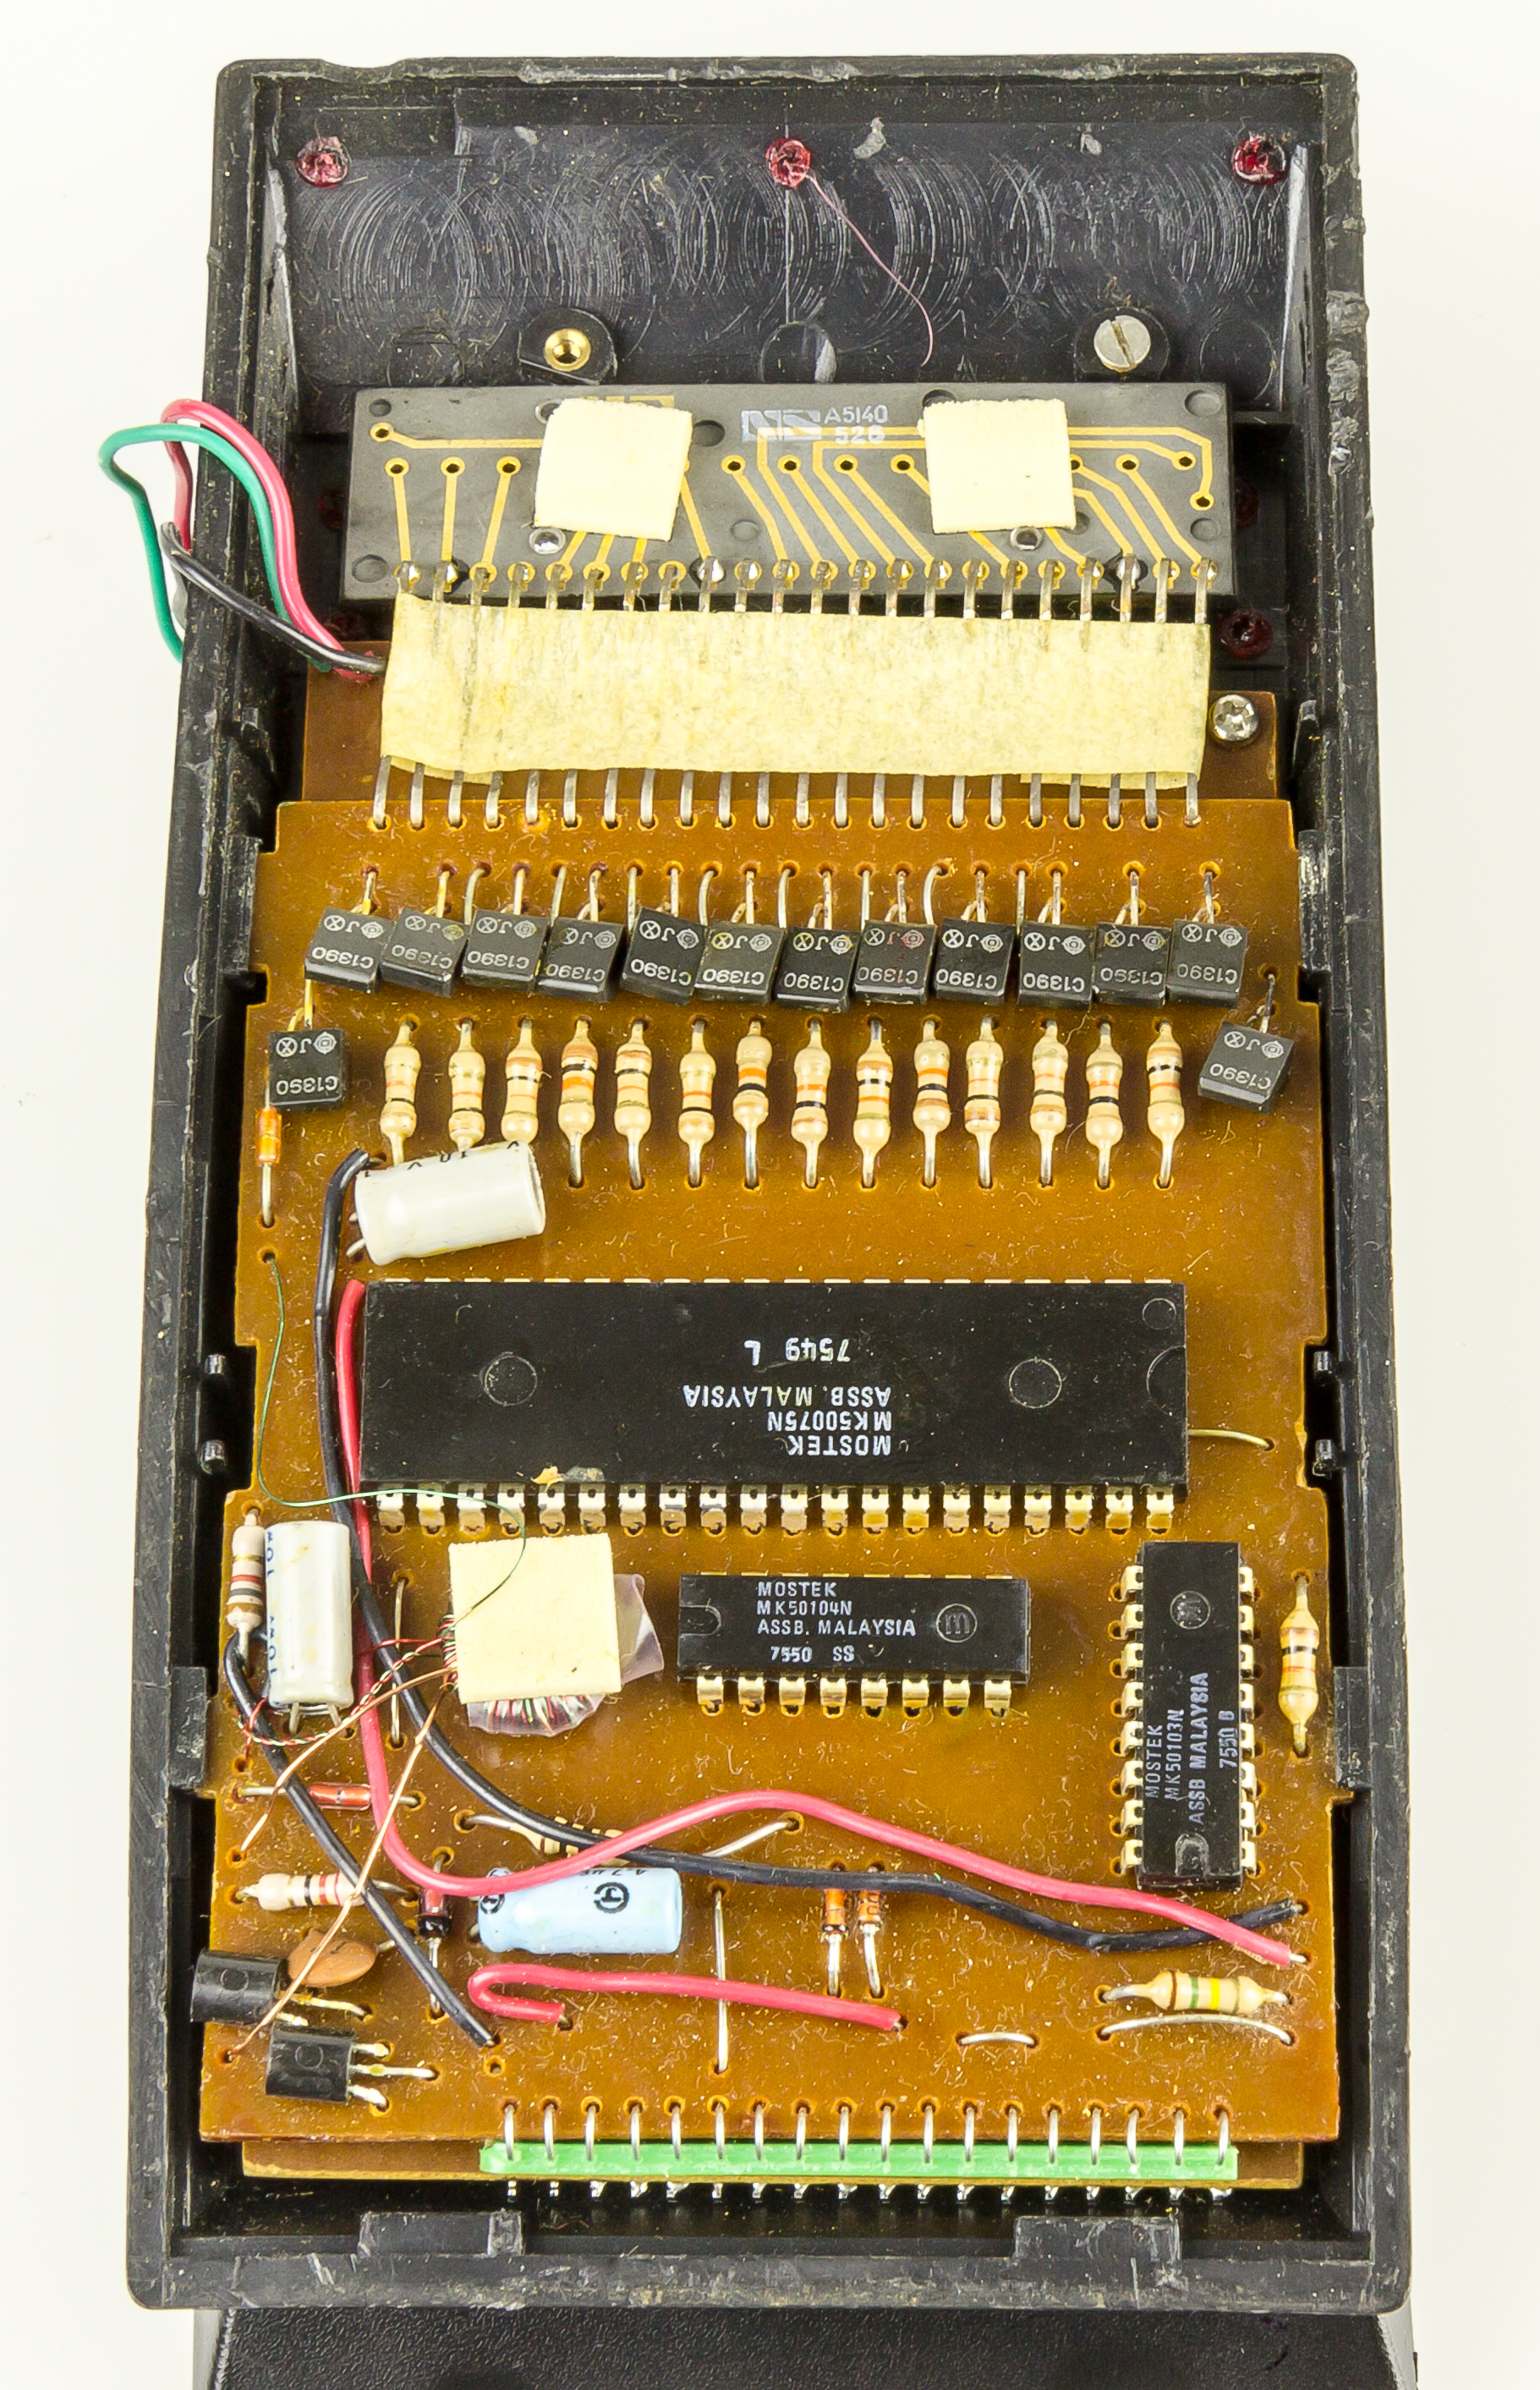 File:Electronic calculator Privileg SR 54 NC - case opened-2330.jpg